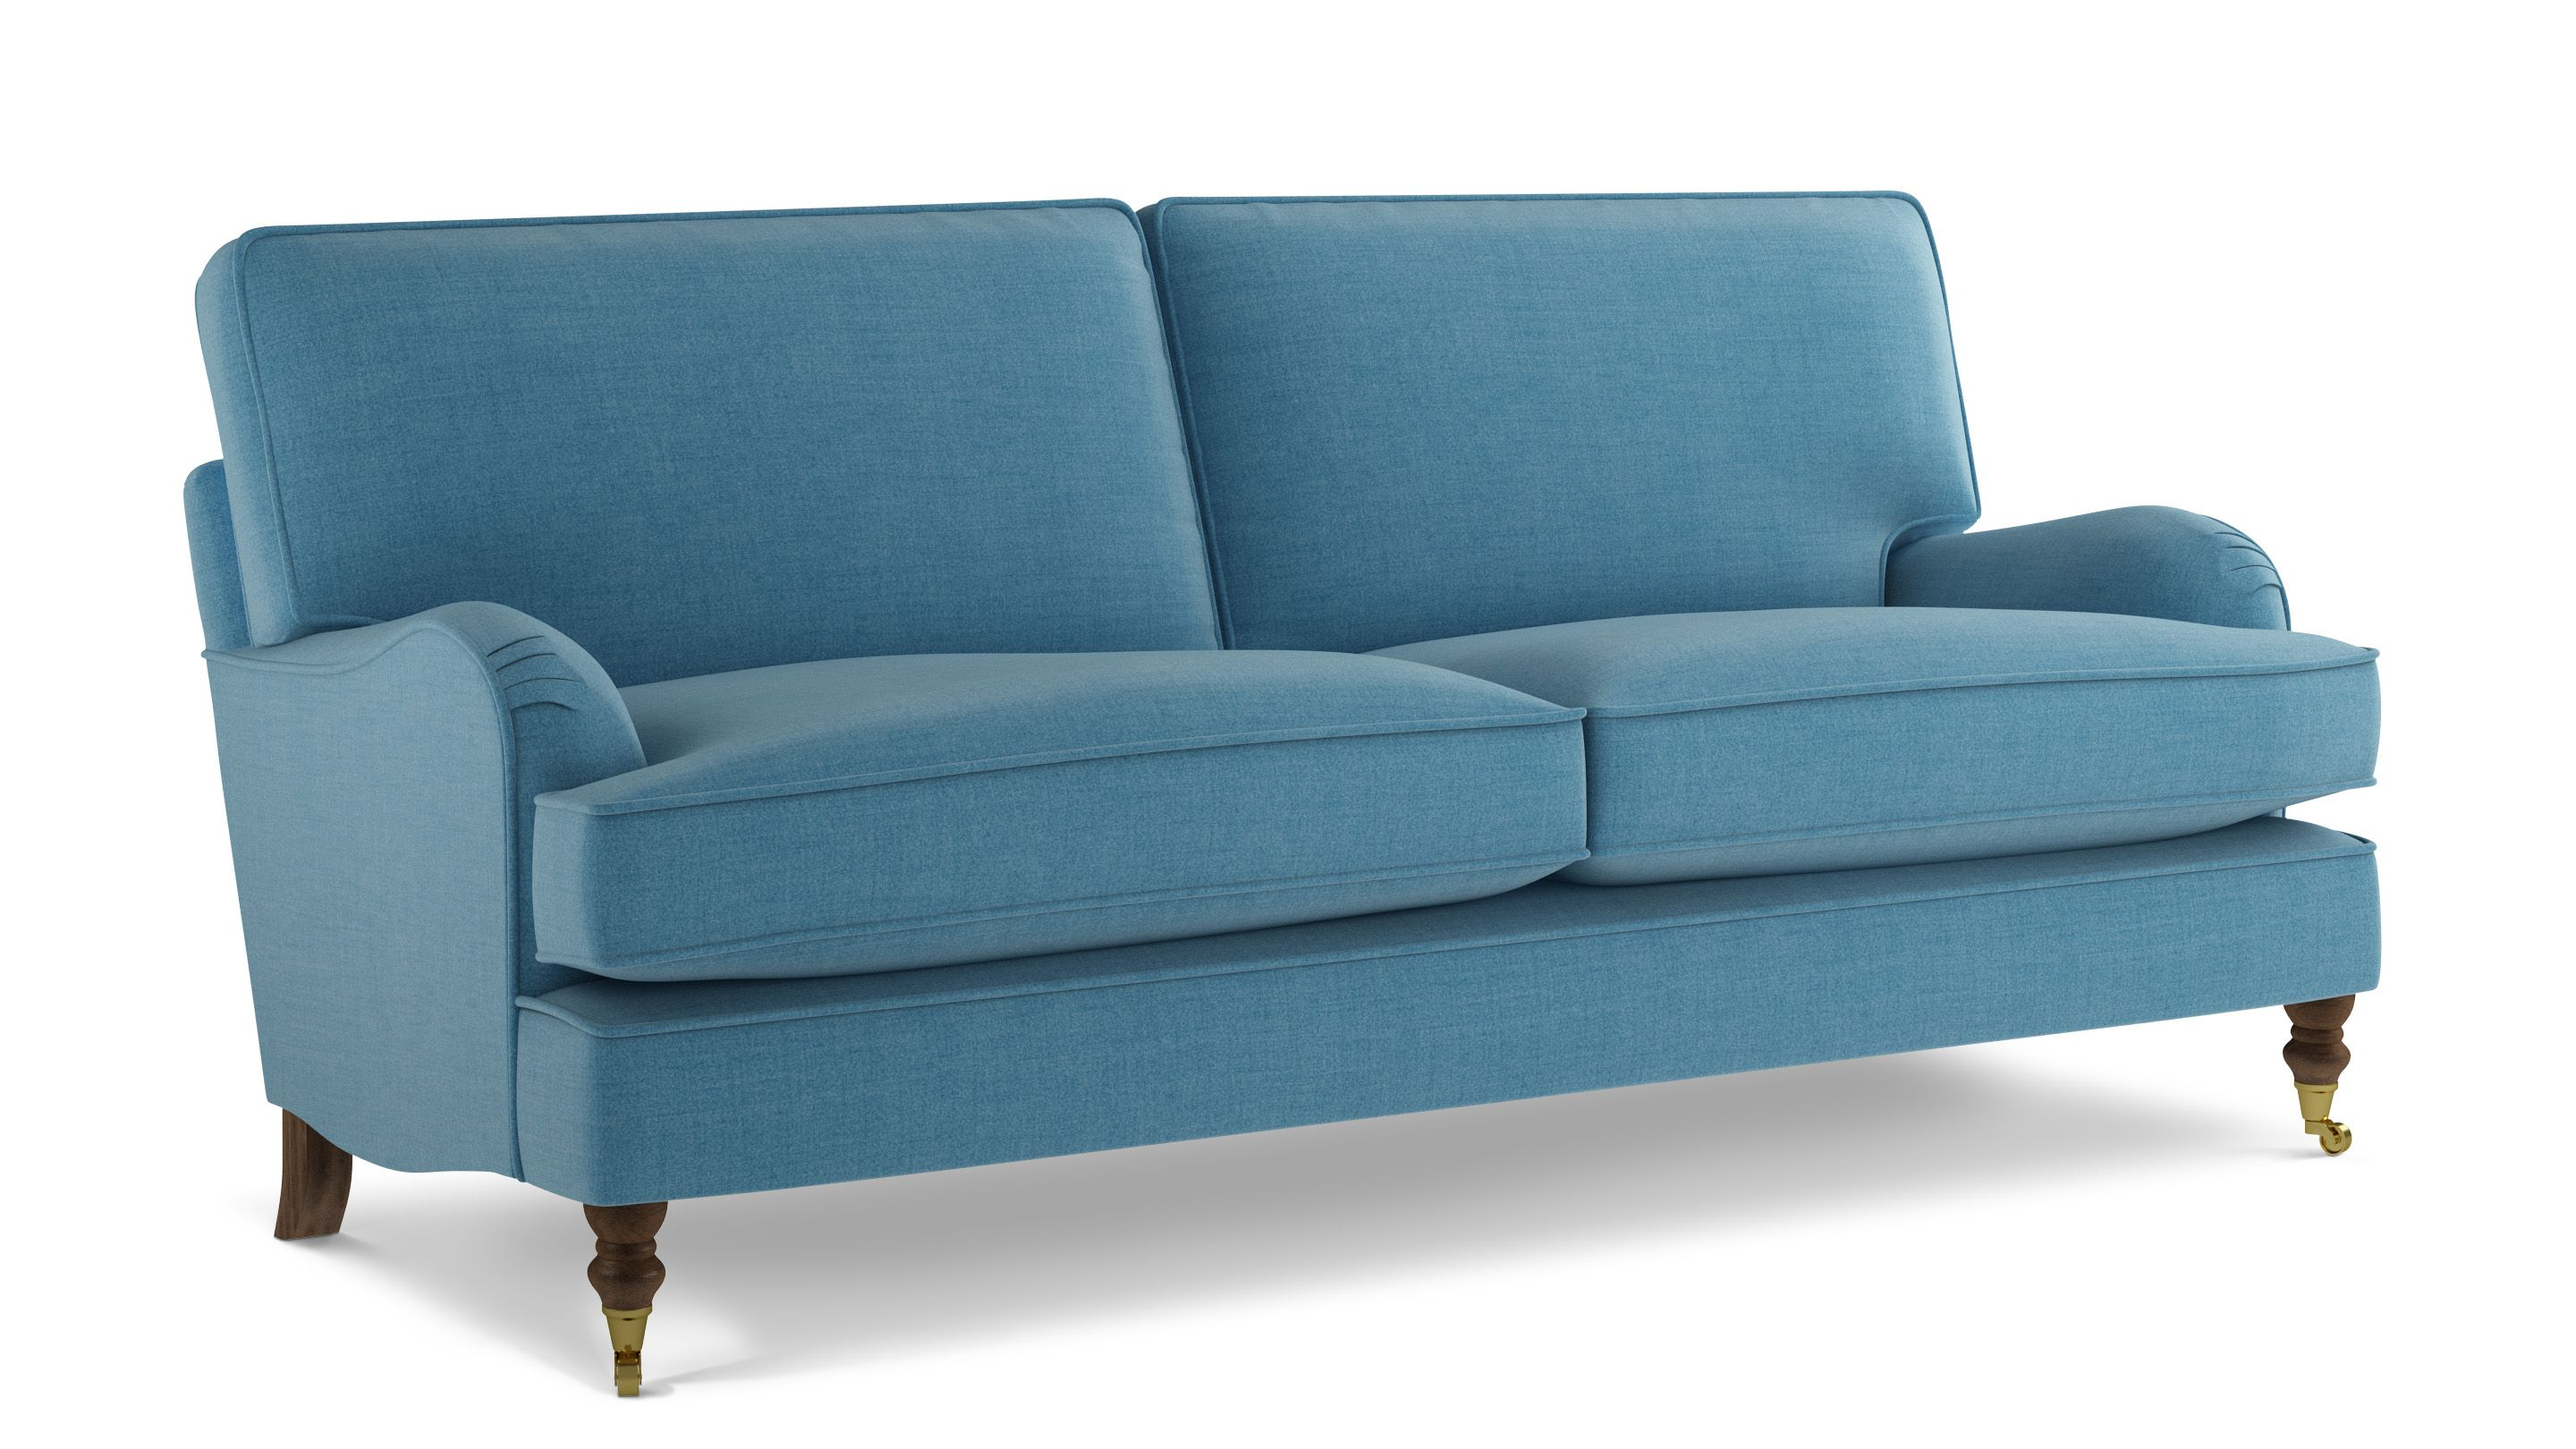 Hartfield Sofa 3 Seater Vintage Style with Wheels